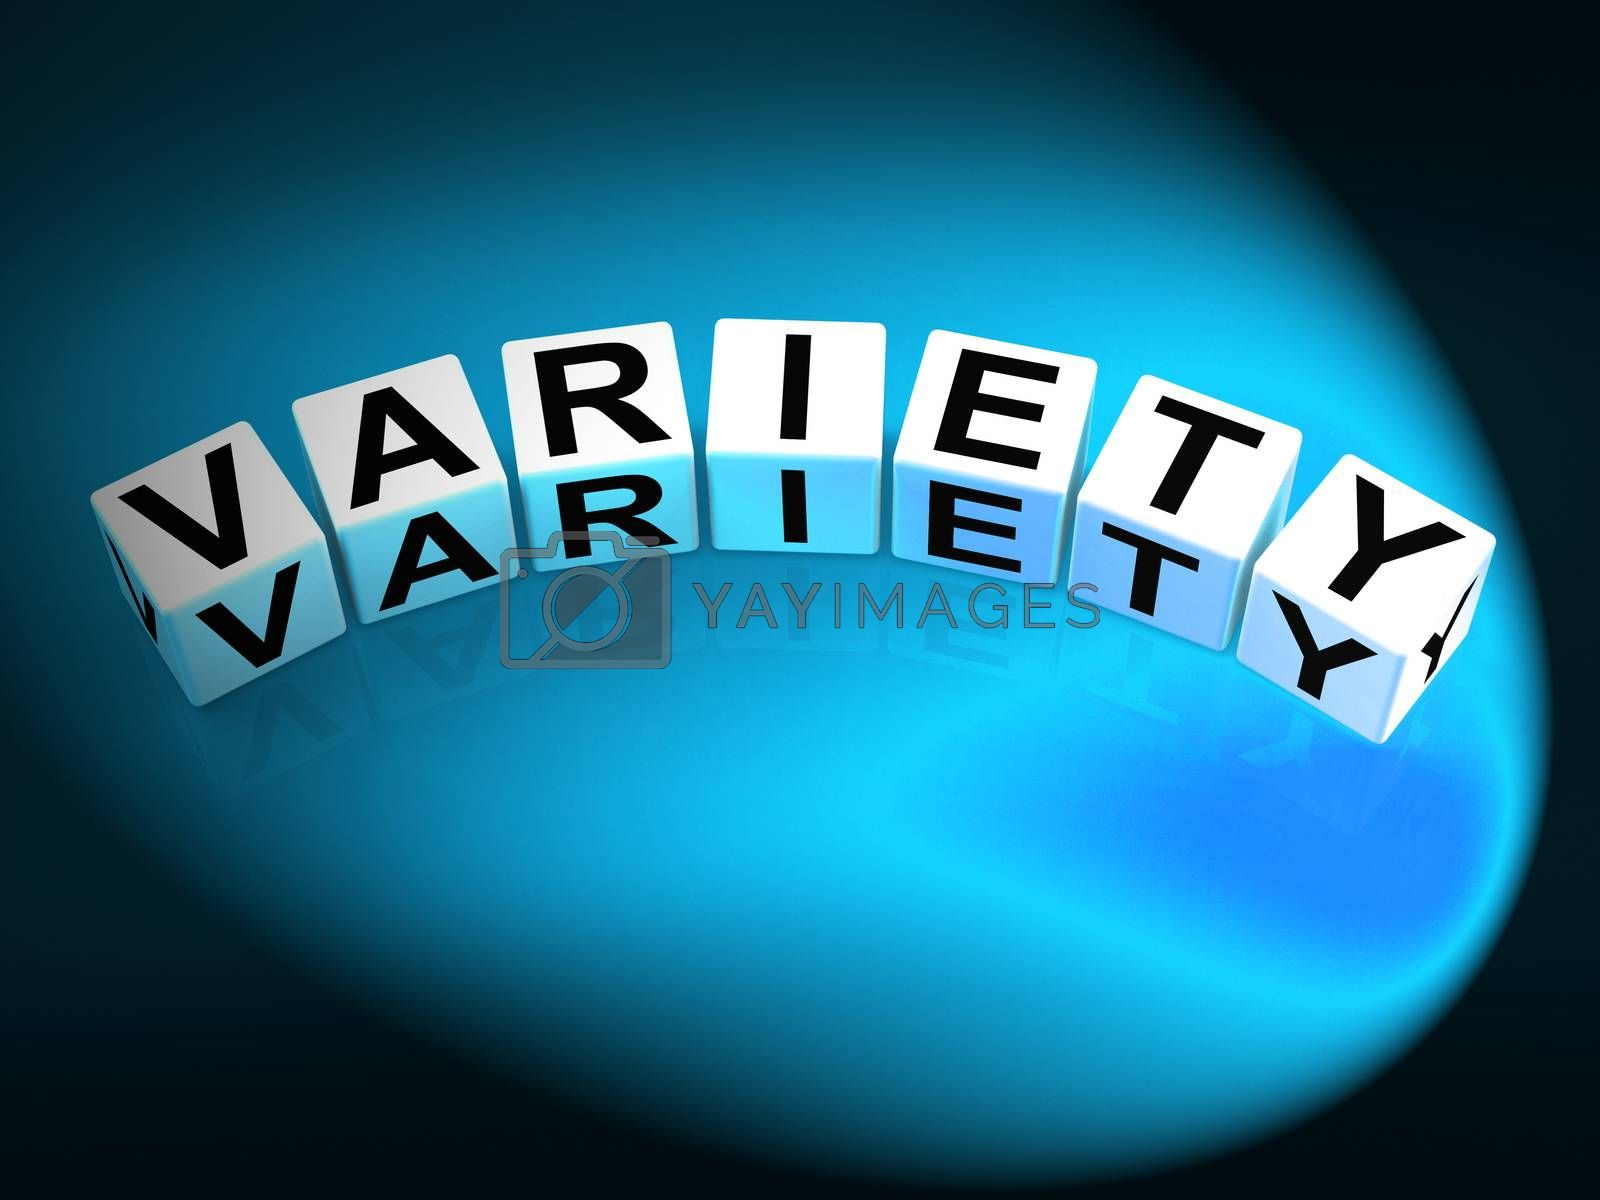 Variety Dice Mean Varieties Assortments and Diversity by stuartmiles